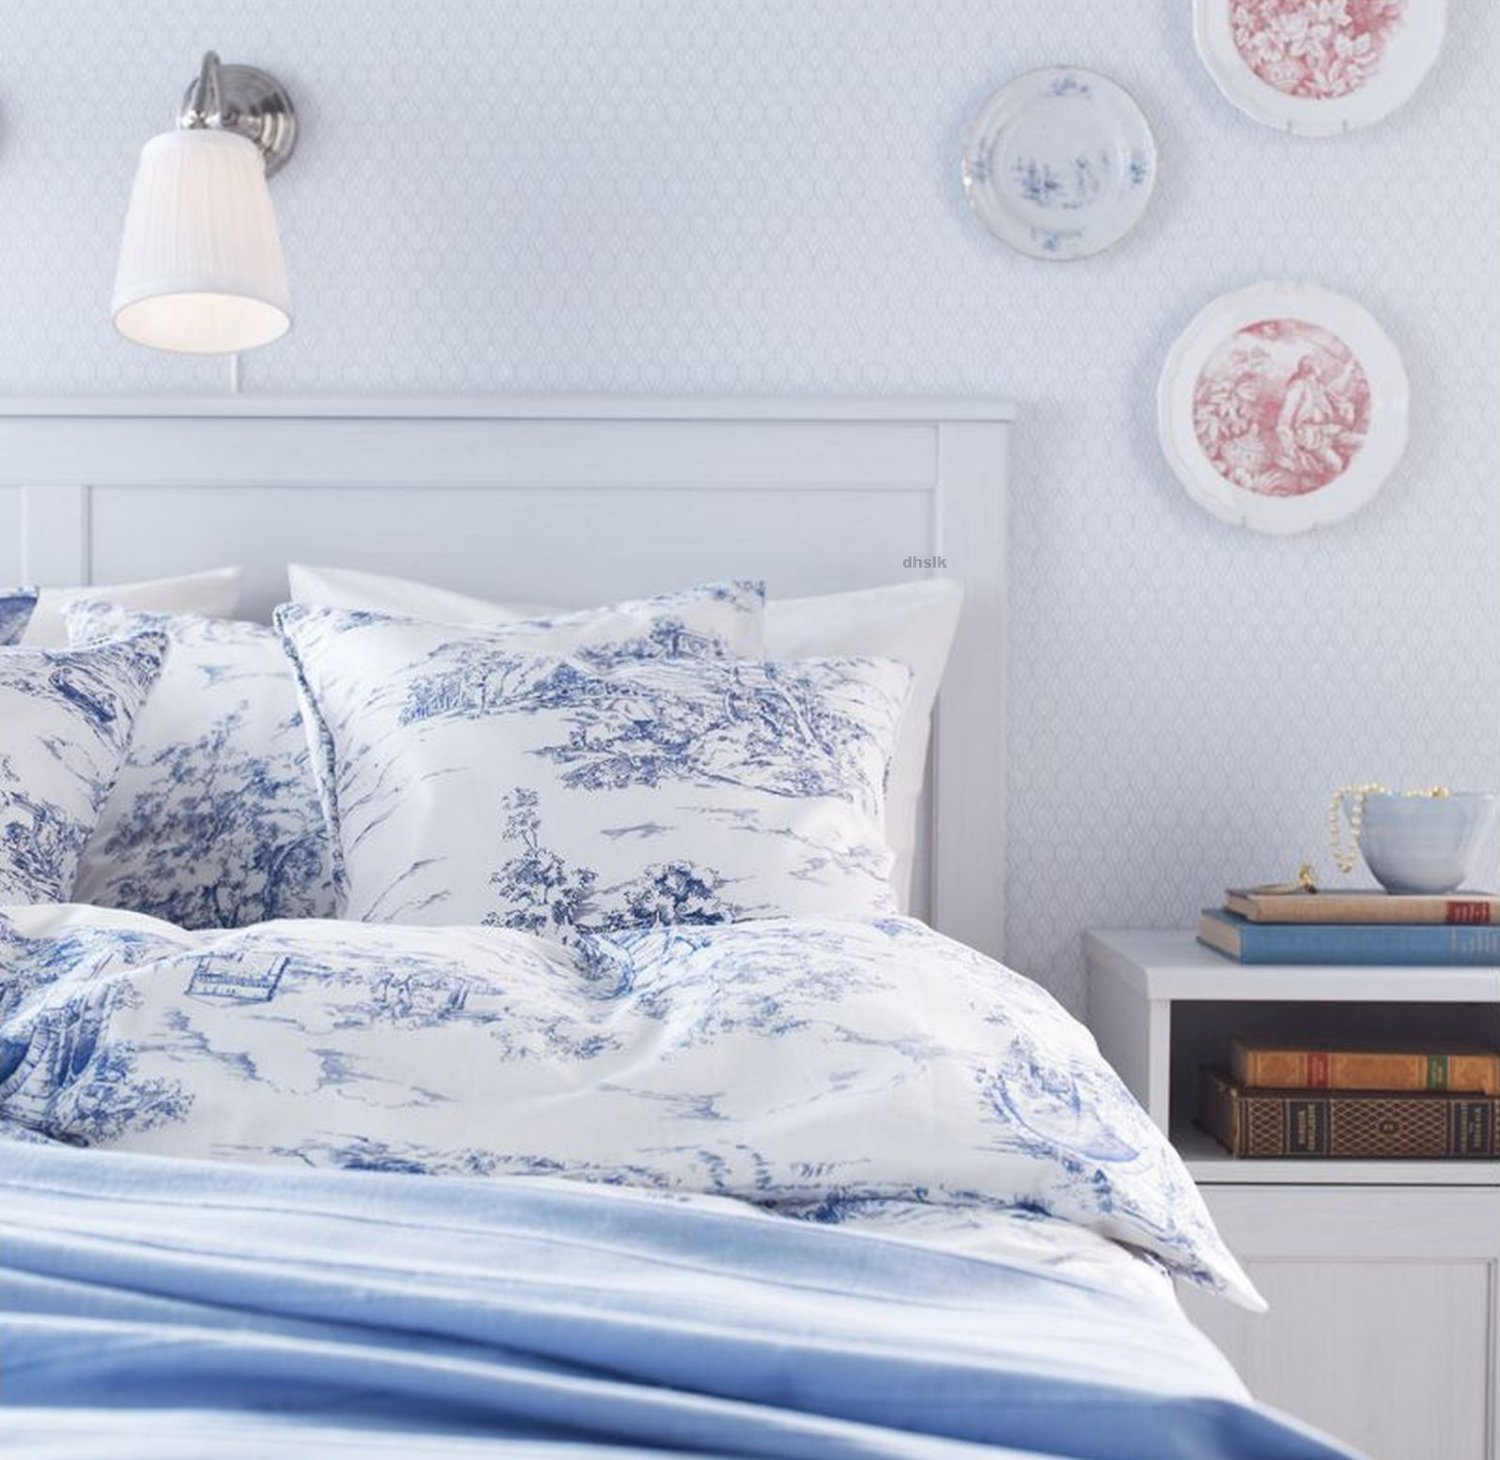 Ikea emmie land queen duvet cover pillowcases set blue white toile french des - Parure de couette ikea ...